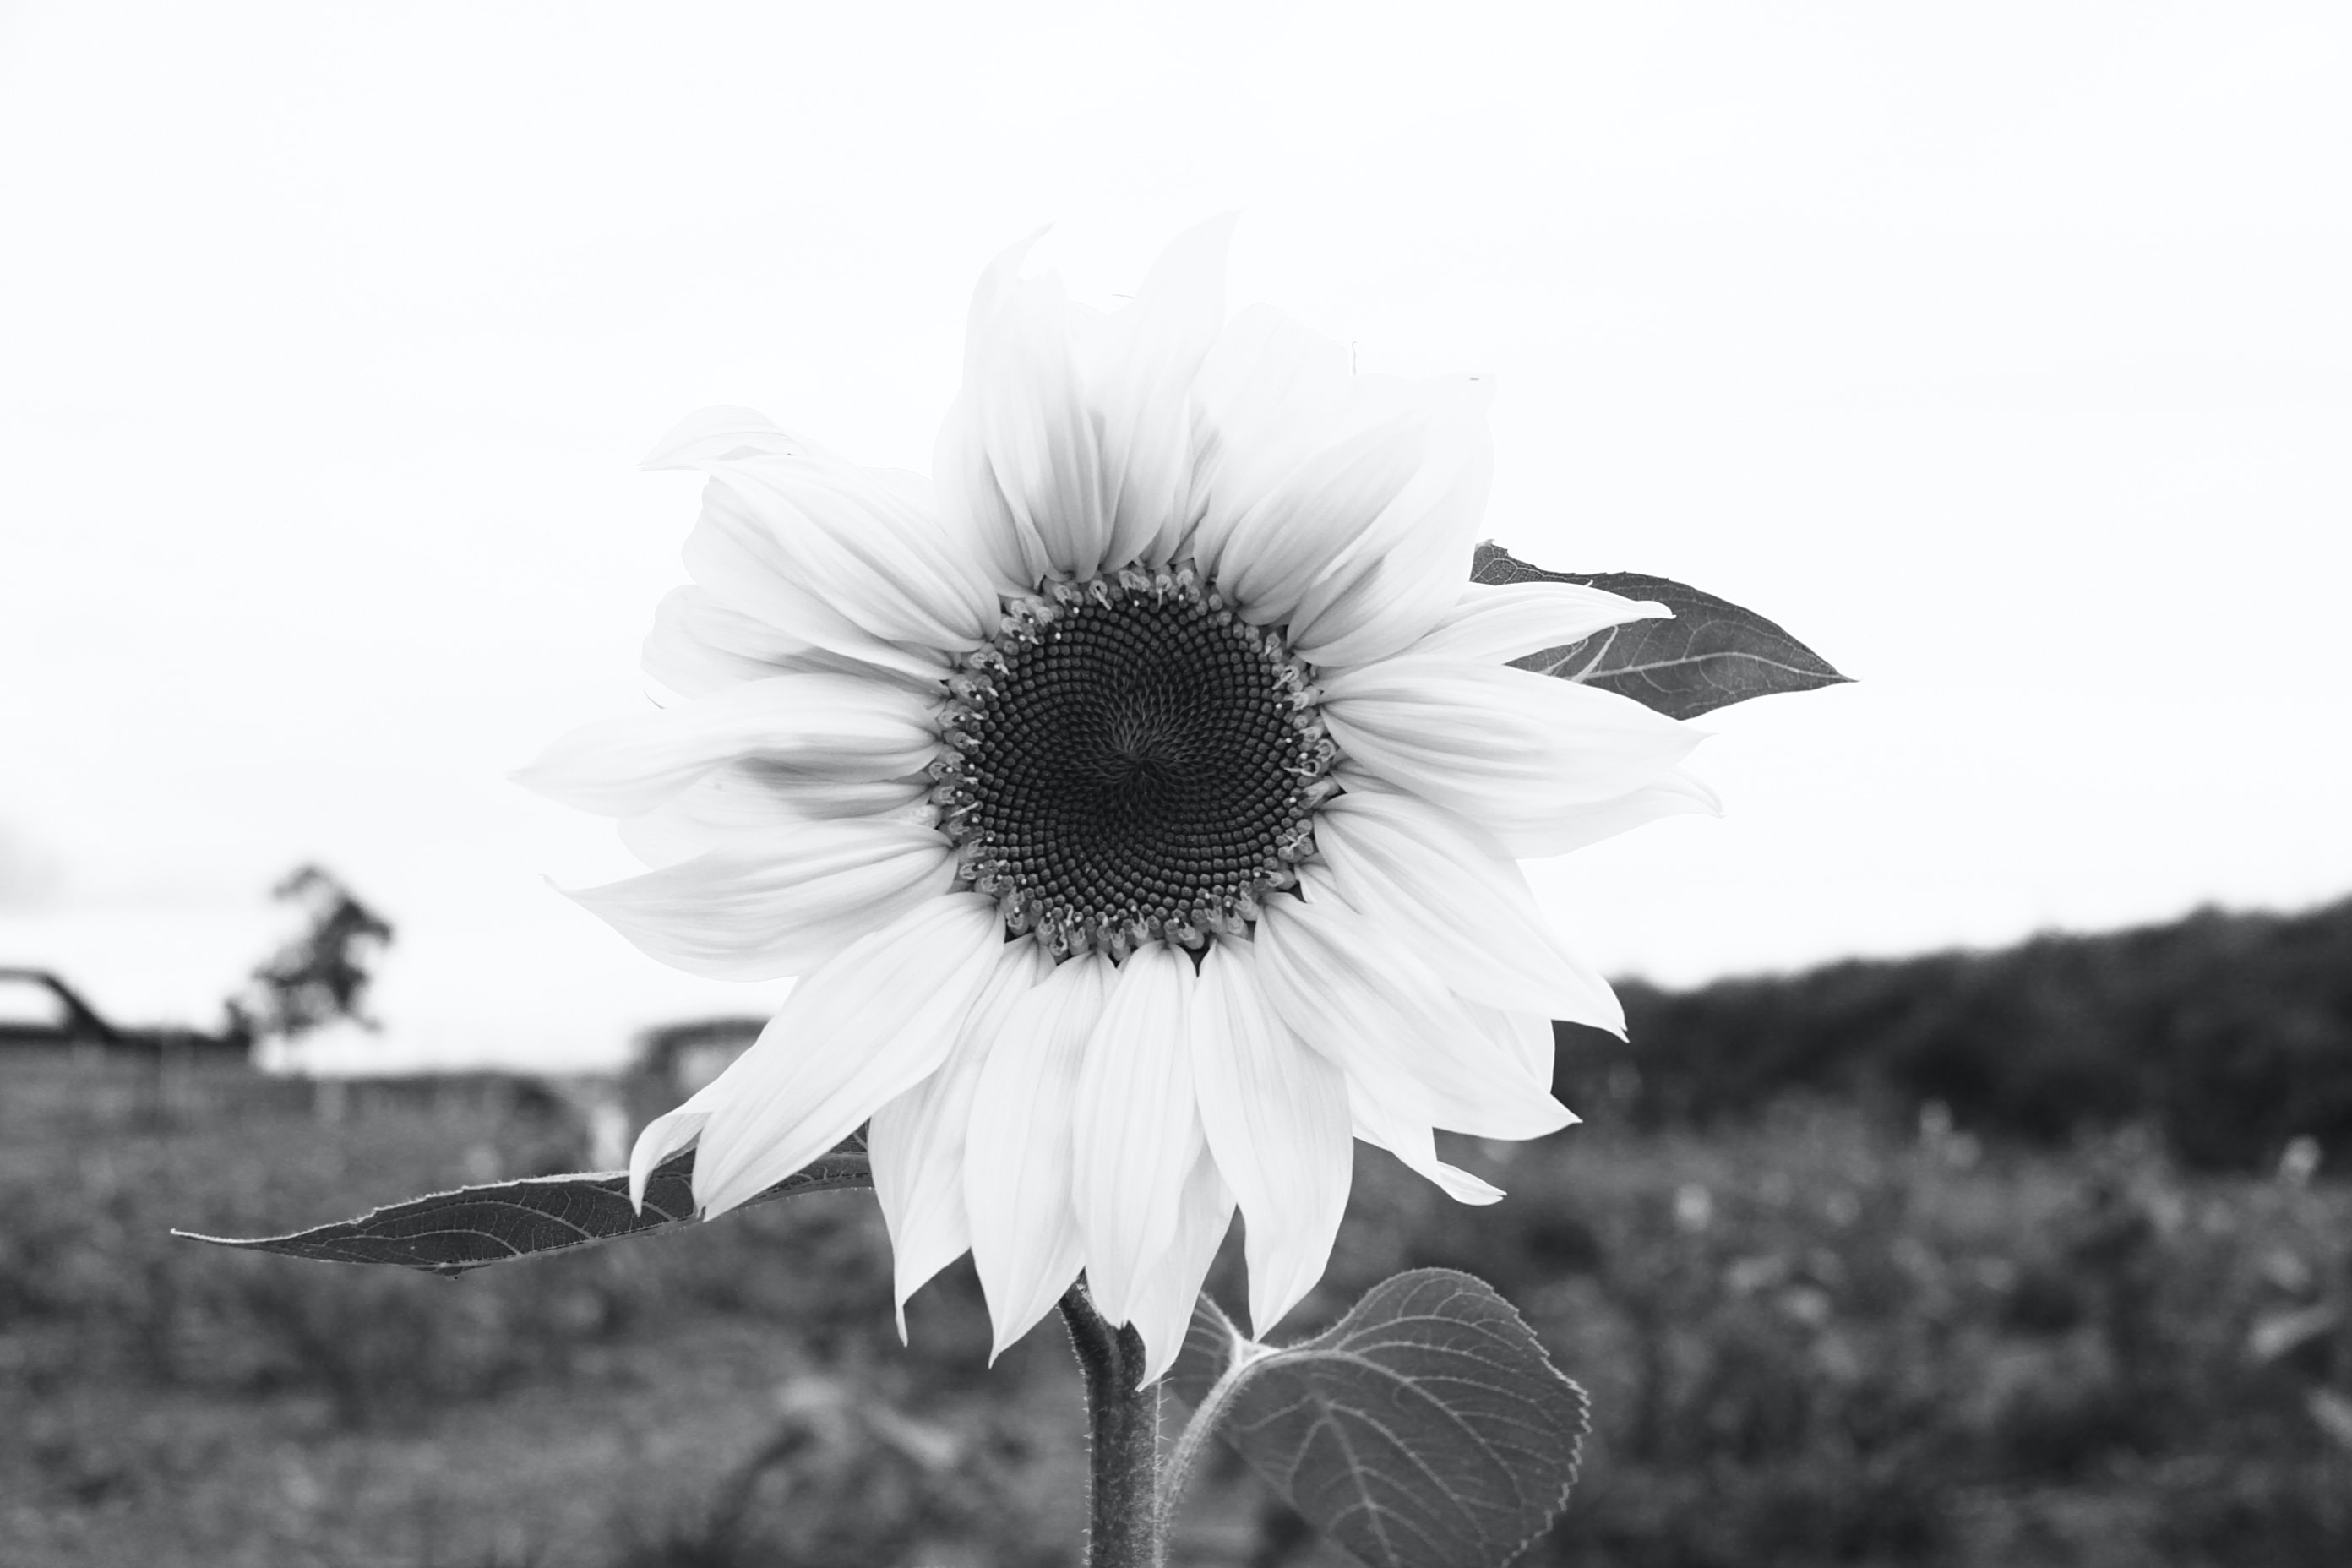 grayscale photograph of sunflower